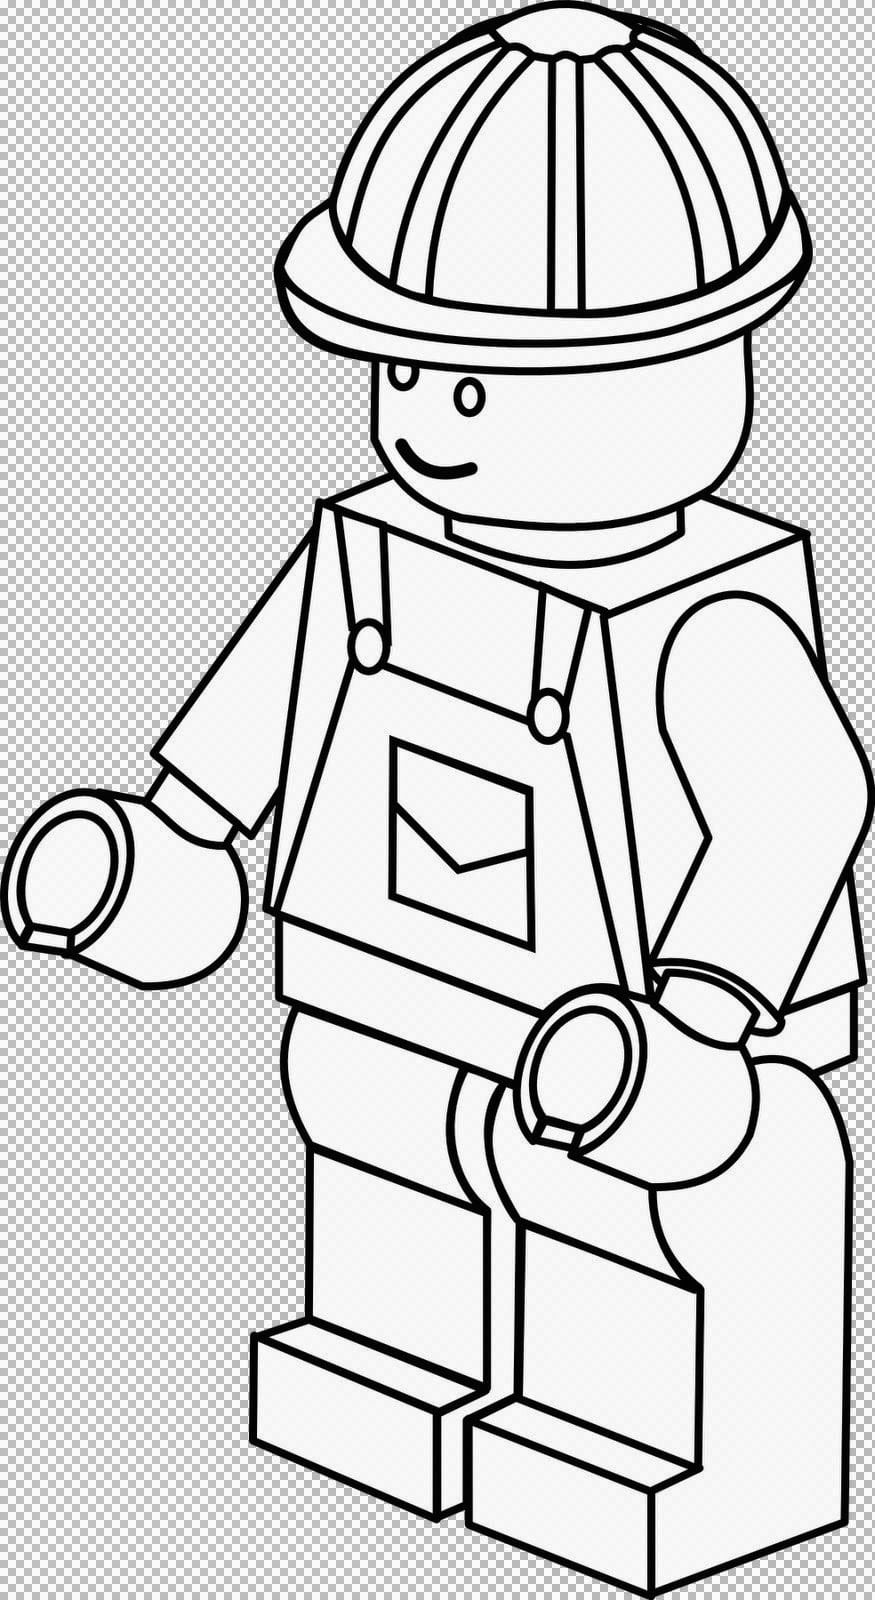 coloring picture lego lego star wars coloring pages getcoloringpagescom lego coloring picture